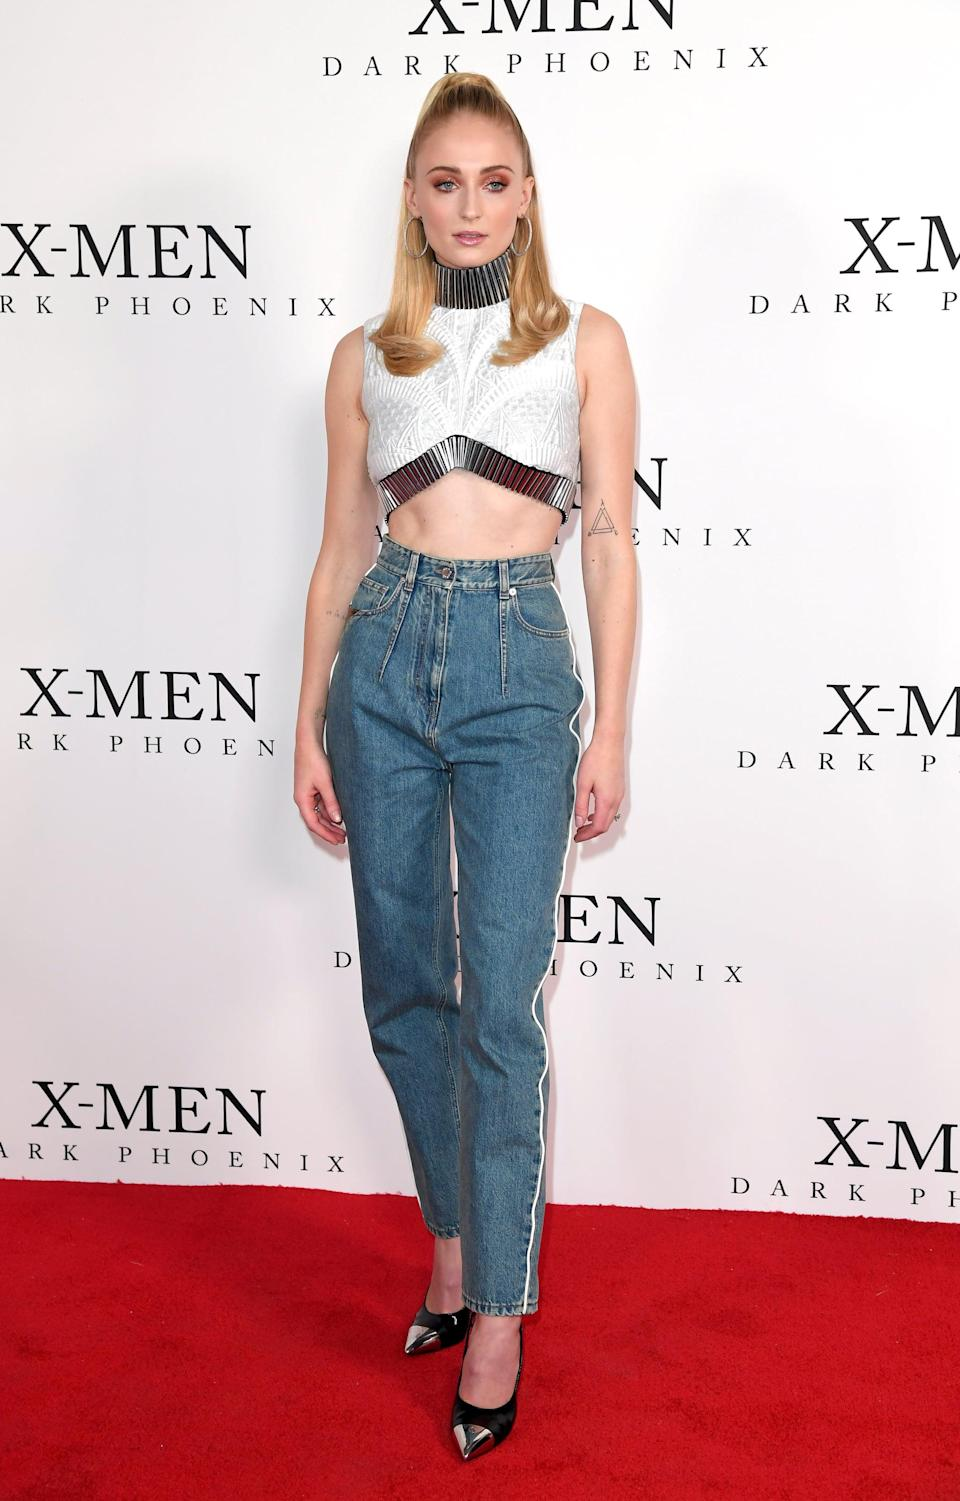 <p>Sophie channeled the '80s in these high-waist jeans with white piping and a structural crop top at a London-based <b>X-Men</b> fan event.</p>